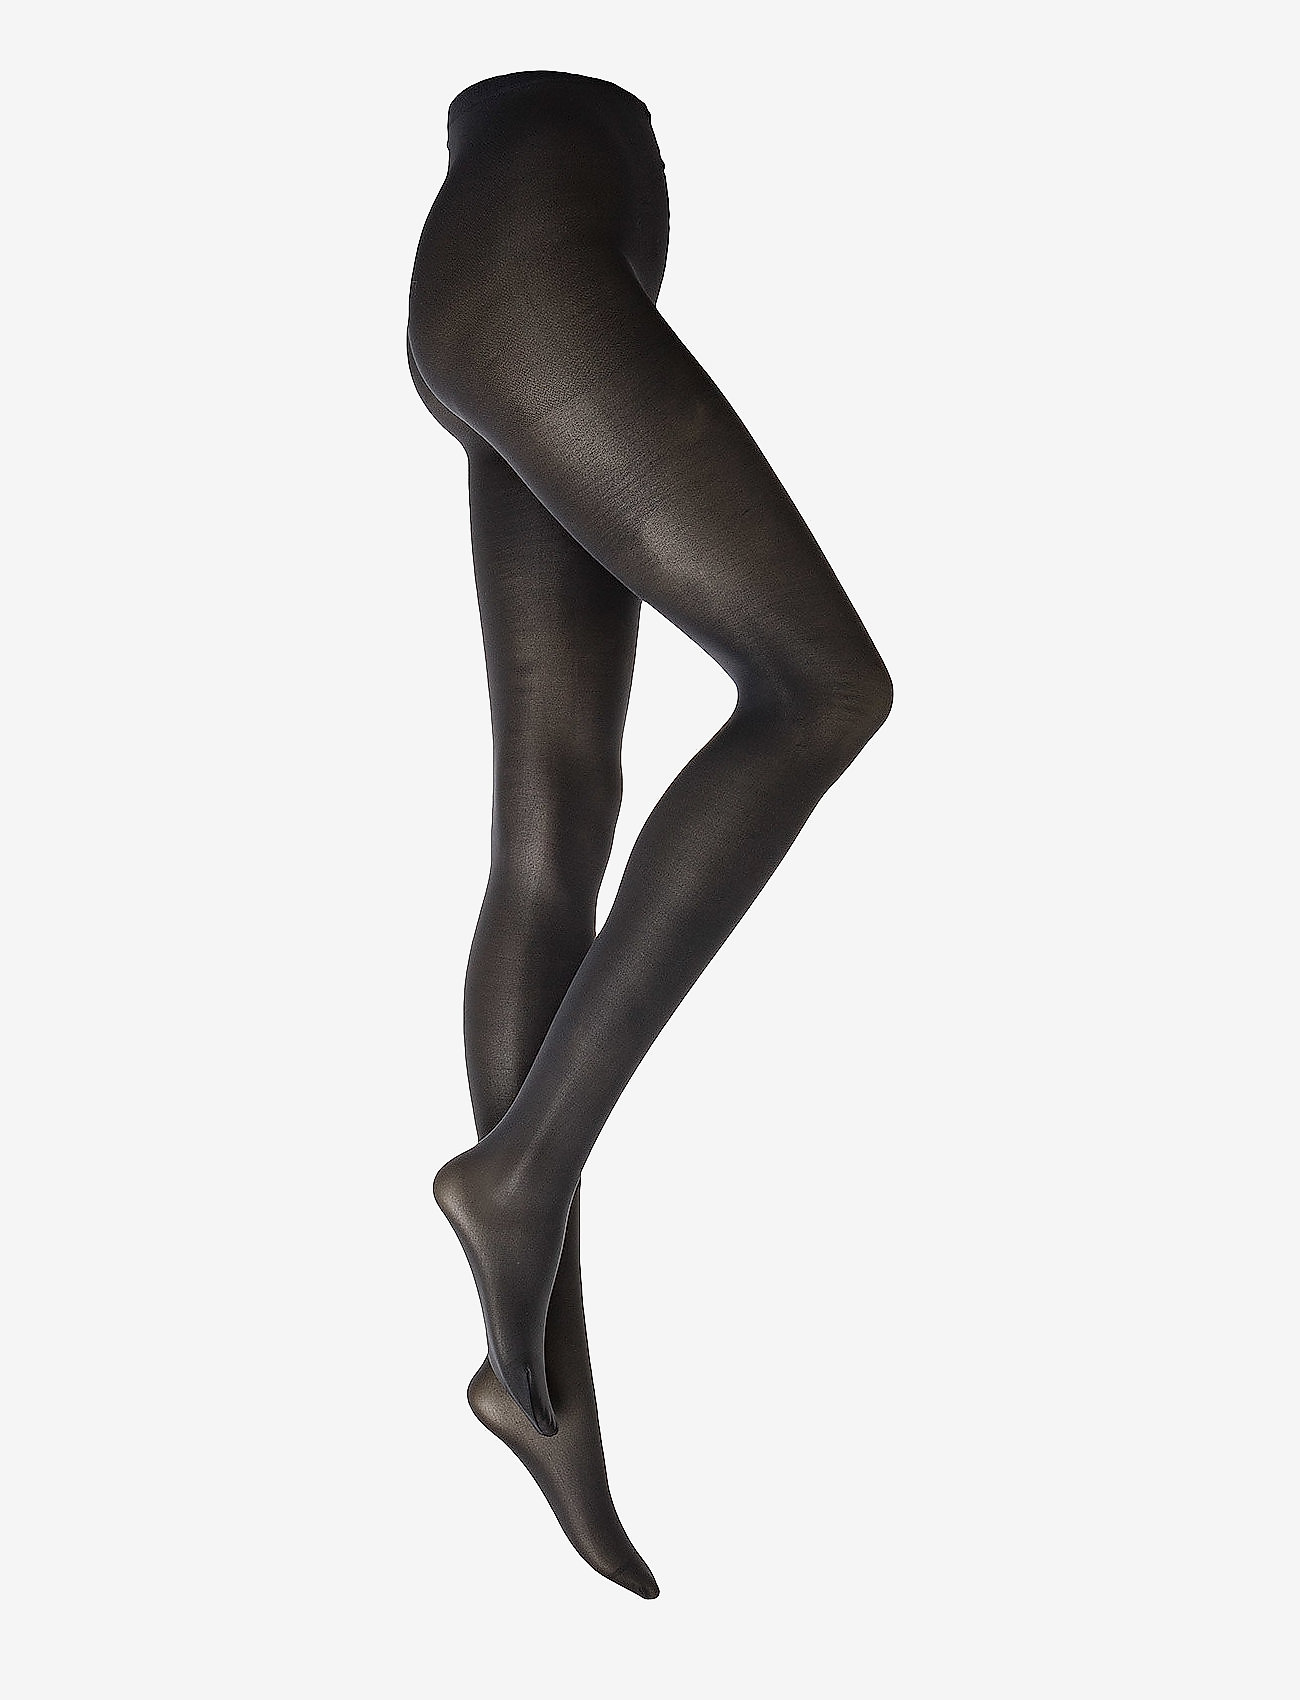 Vogue - Ladies den pantyhose, Opaque 40 den - basic - carbon - 0